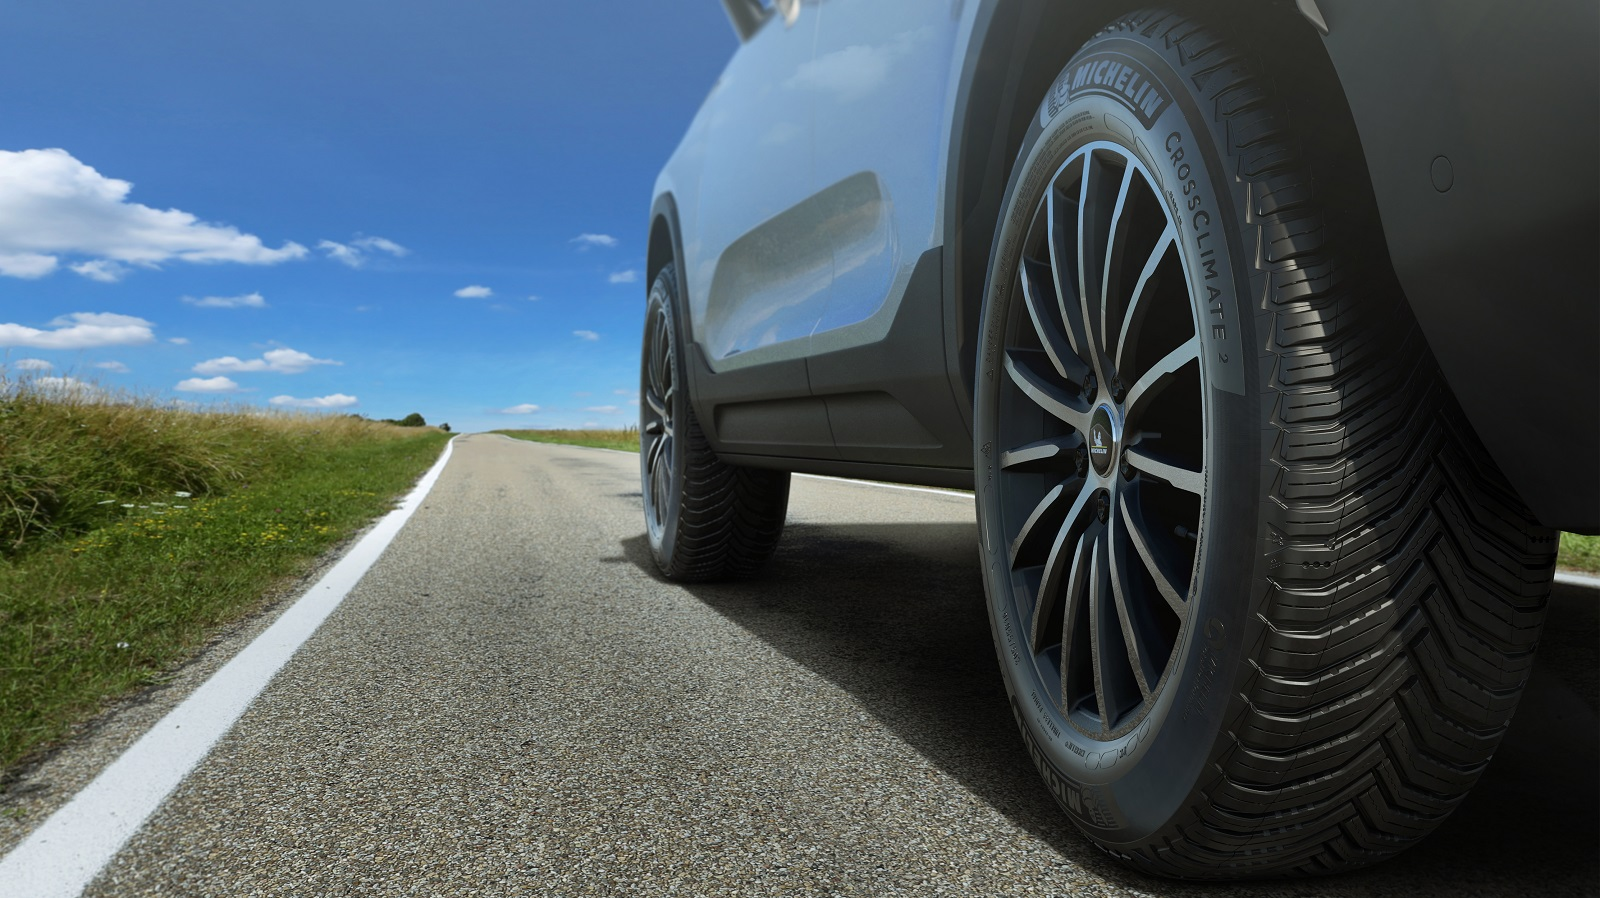 Safer and more sustainable mobility provided by the new MICHELIN CrossClimate 2 tire